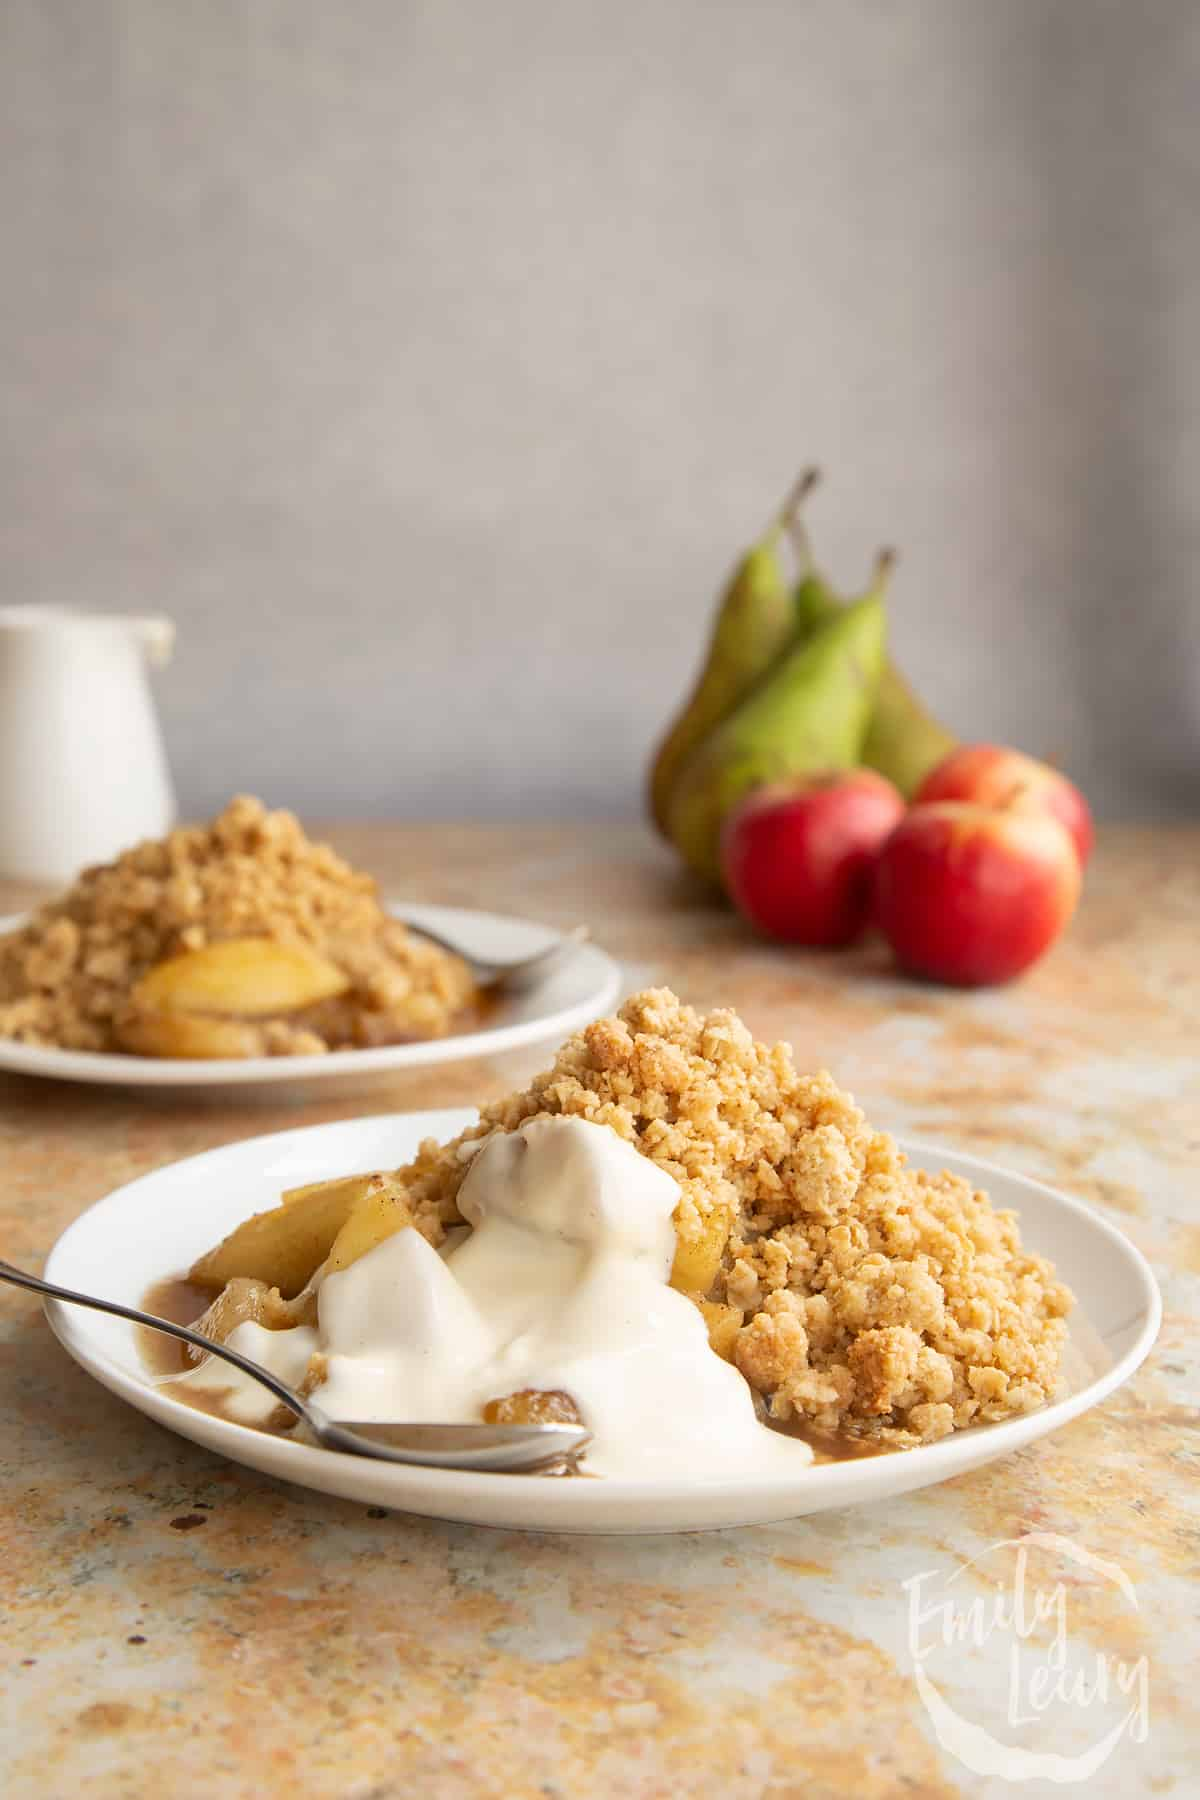 Apple pear crumble served to a small white plate with some custard and a small spoon.